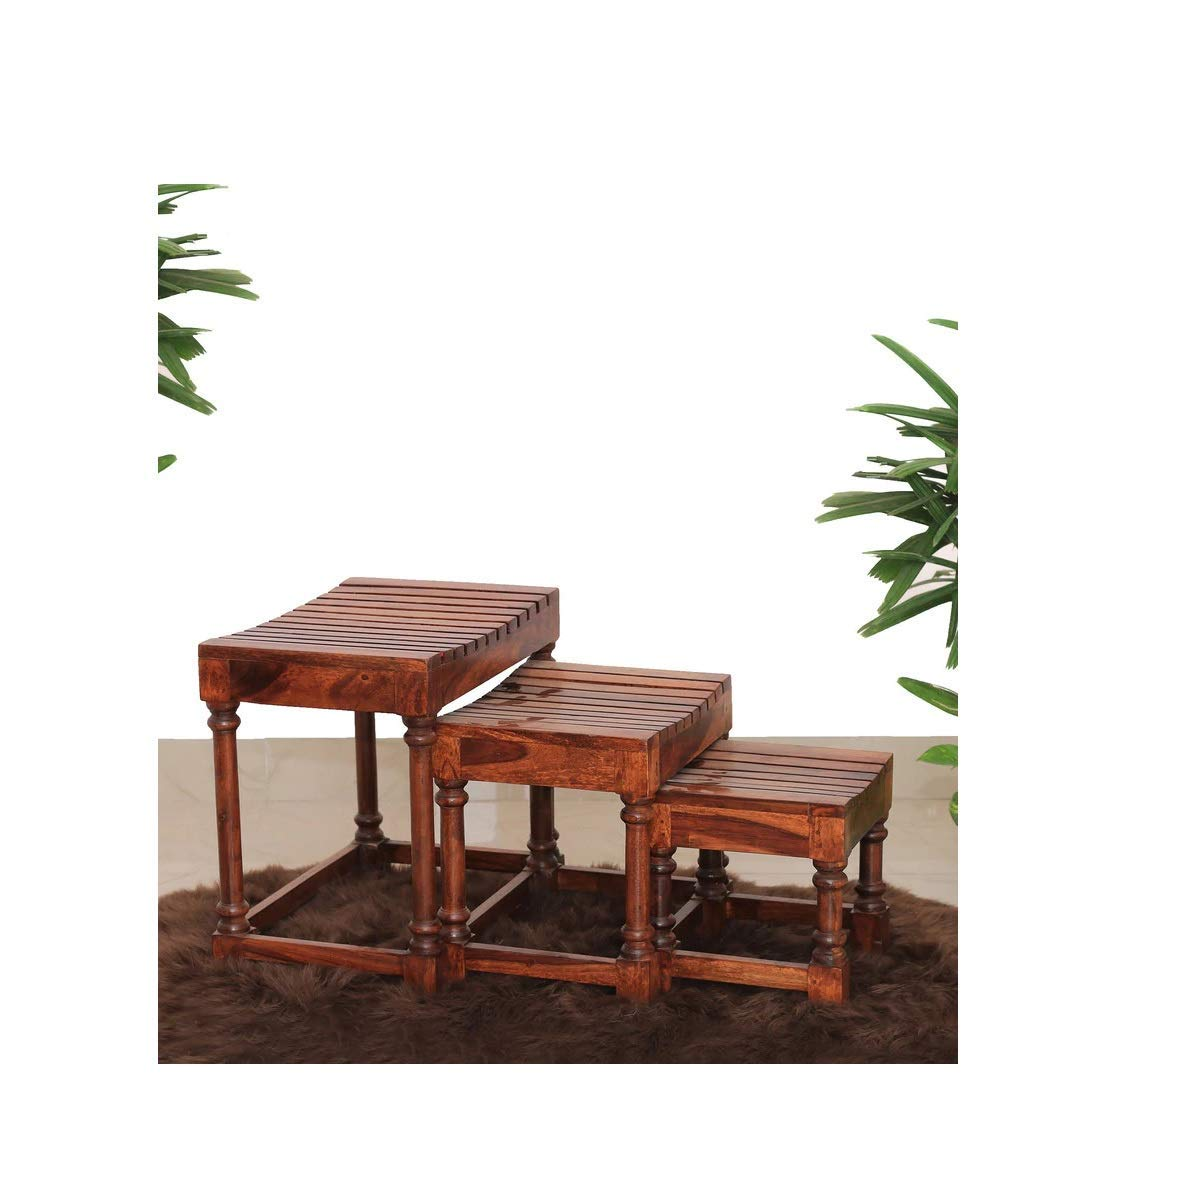 Zulbil nest table set of 3 ,Nest of Tables ,nest of tables for living room